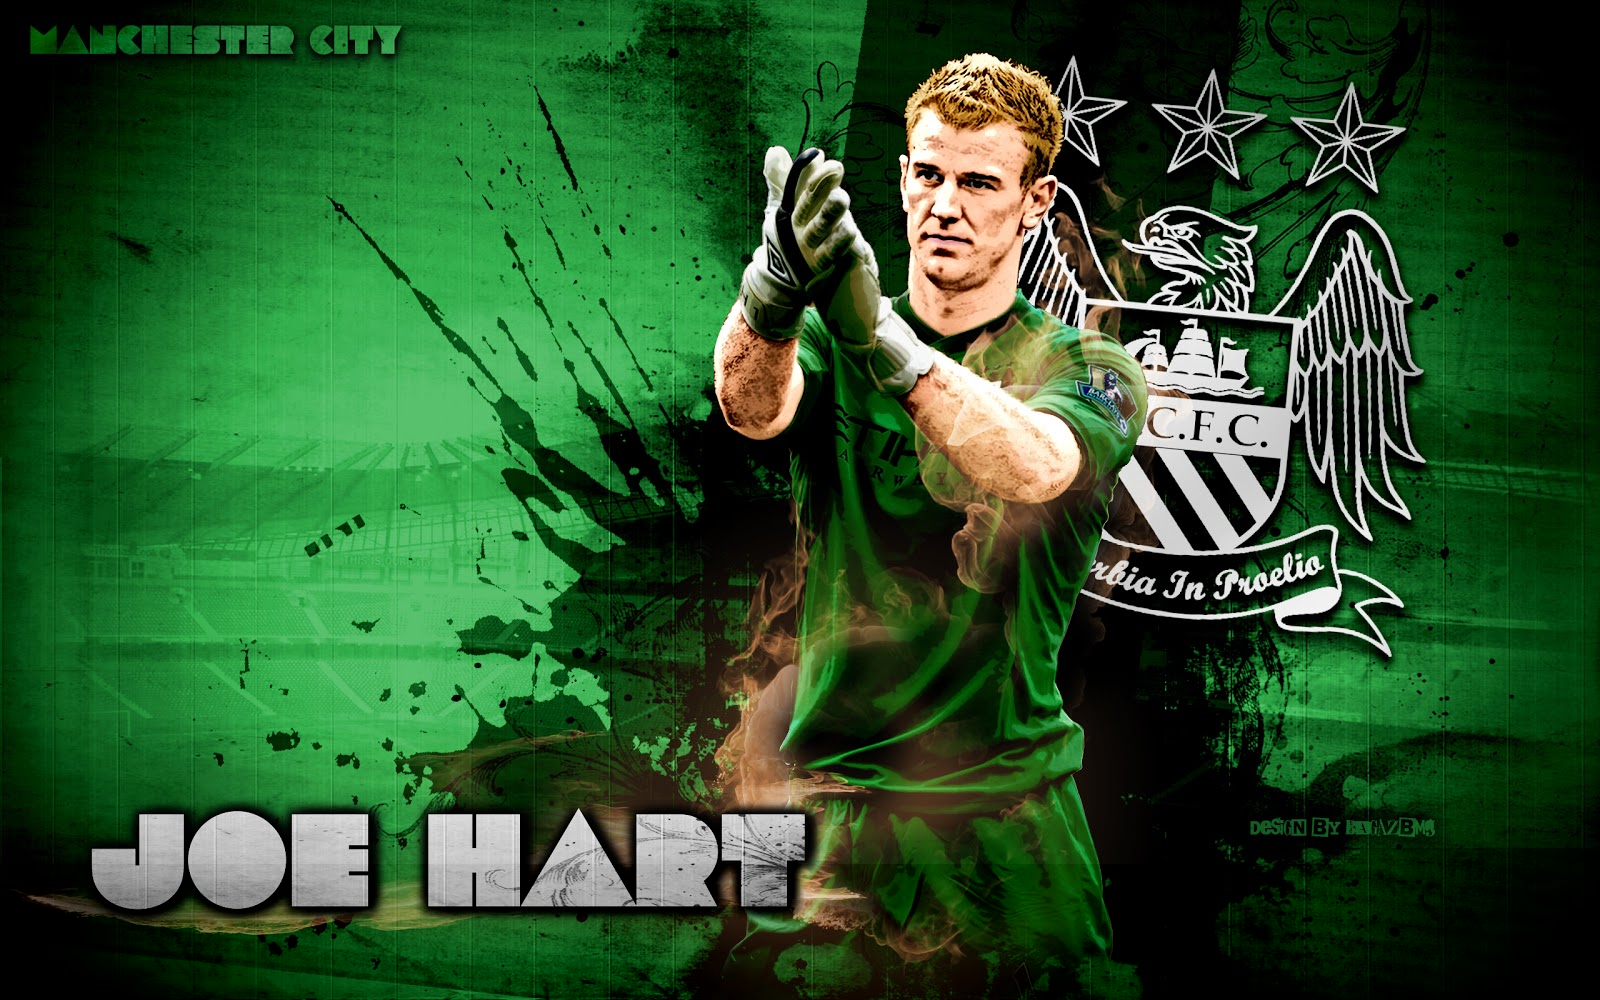 Football Wallpapers Manchester City Wallpapers: Manchester City 2013 Wallpapers HD